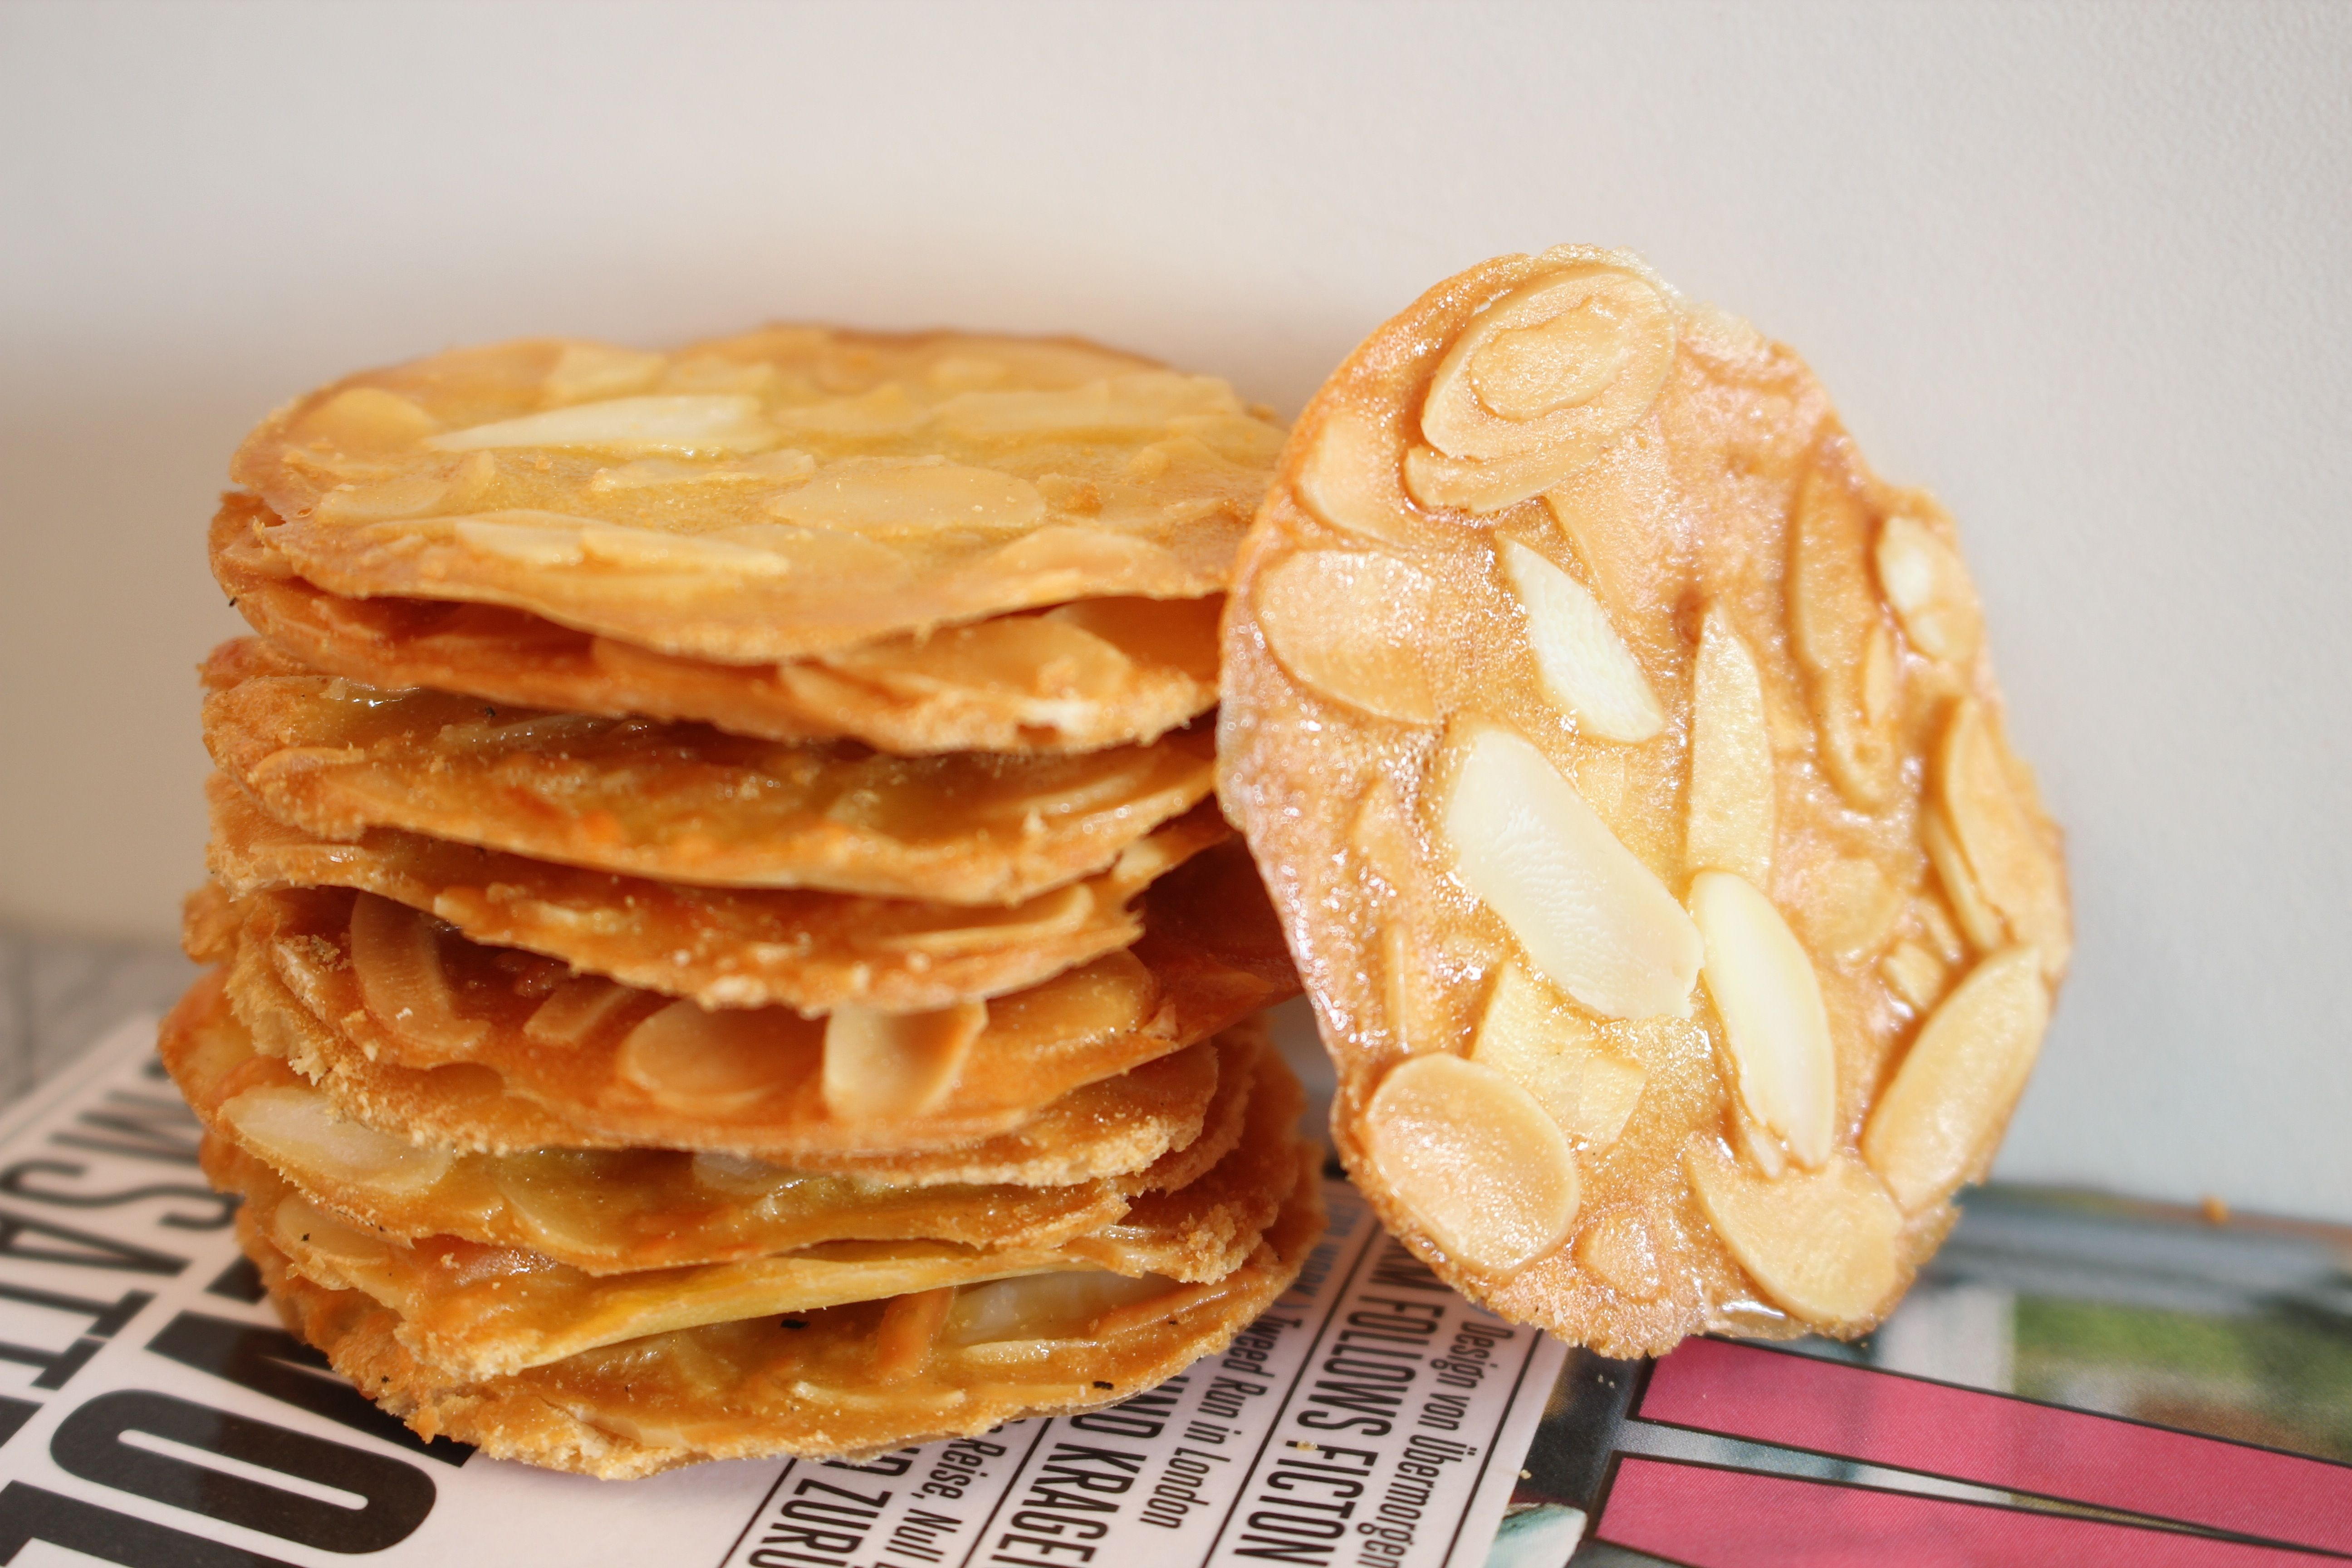 Almond Crispy Cookies Bilingual Eng Indonesia Almond Meal Cookies Almond Recipes Crispy Cookies